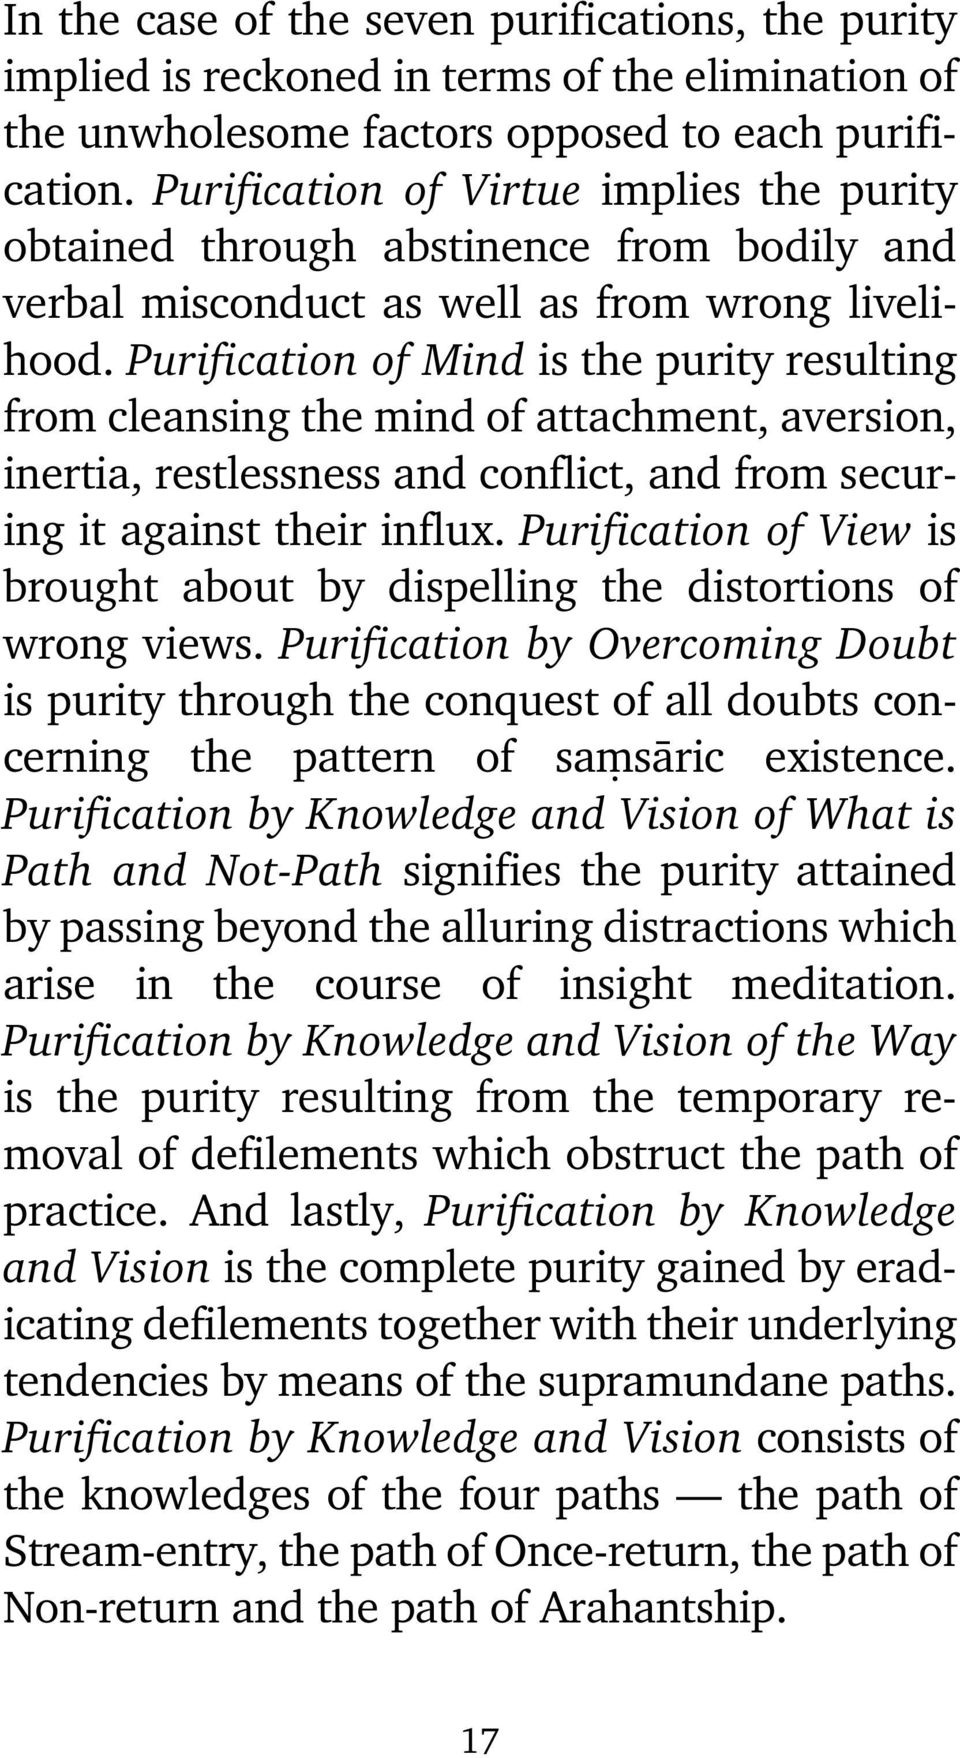 Purification of Mind is the purity resulting from cleansing the mind of attachment, aversion, inertia, restlessness and conflict, and from securing it against their influx.